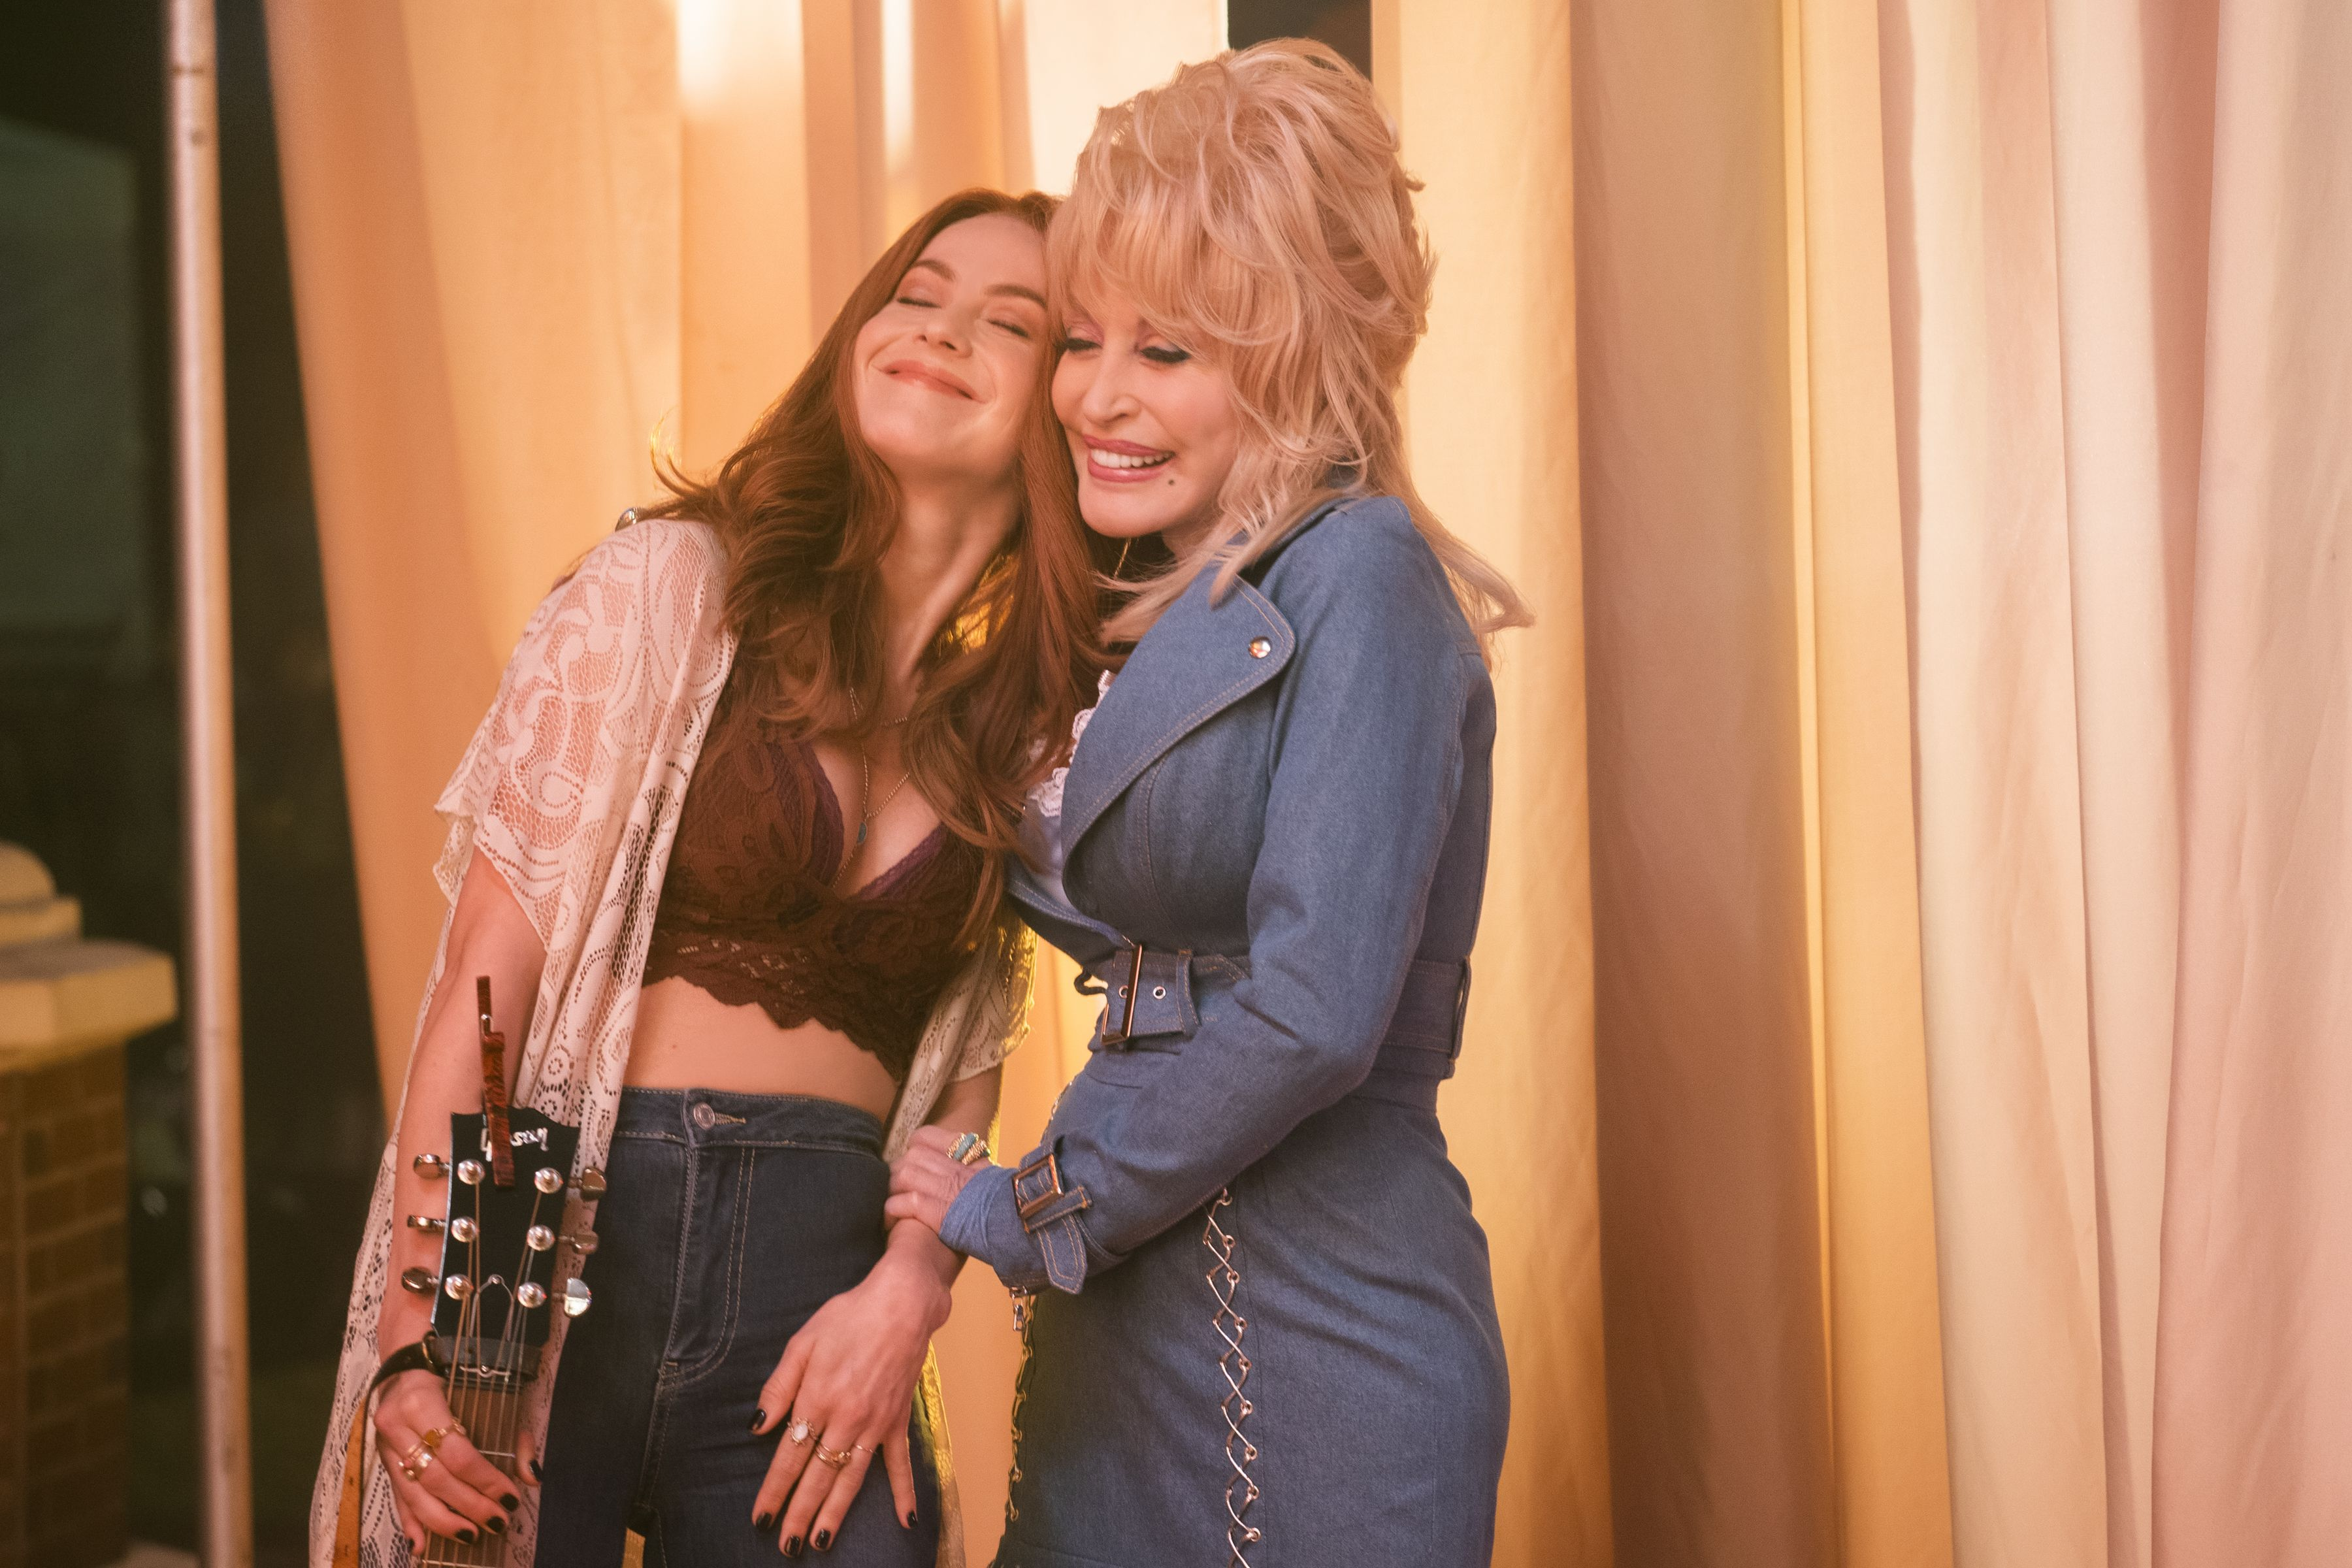 Everything We Know About 'Dolly Parton's Heartstrings' on Netflix